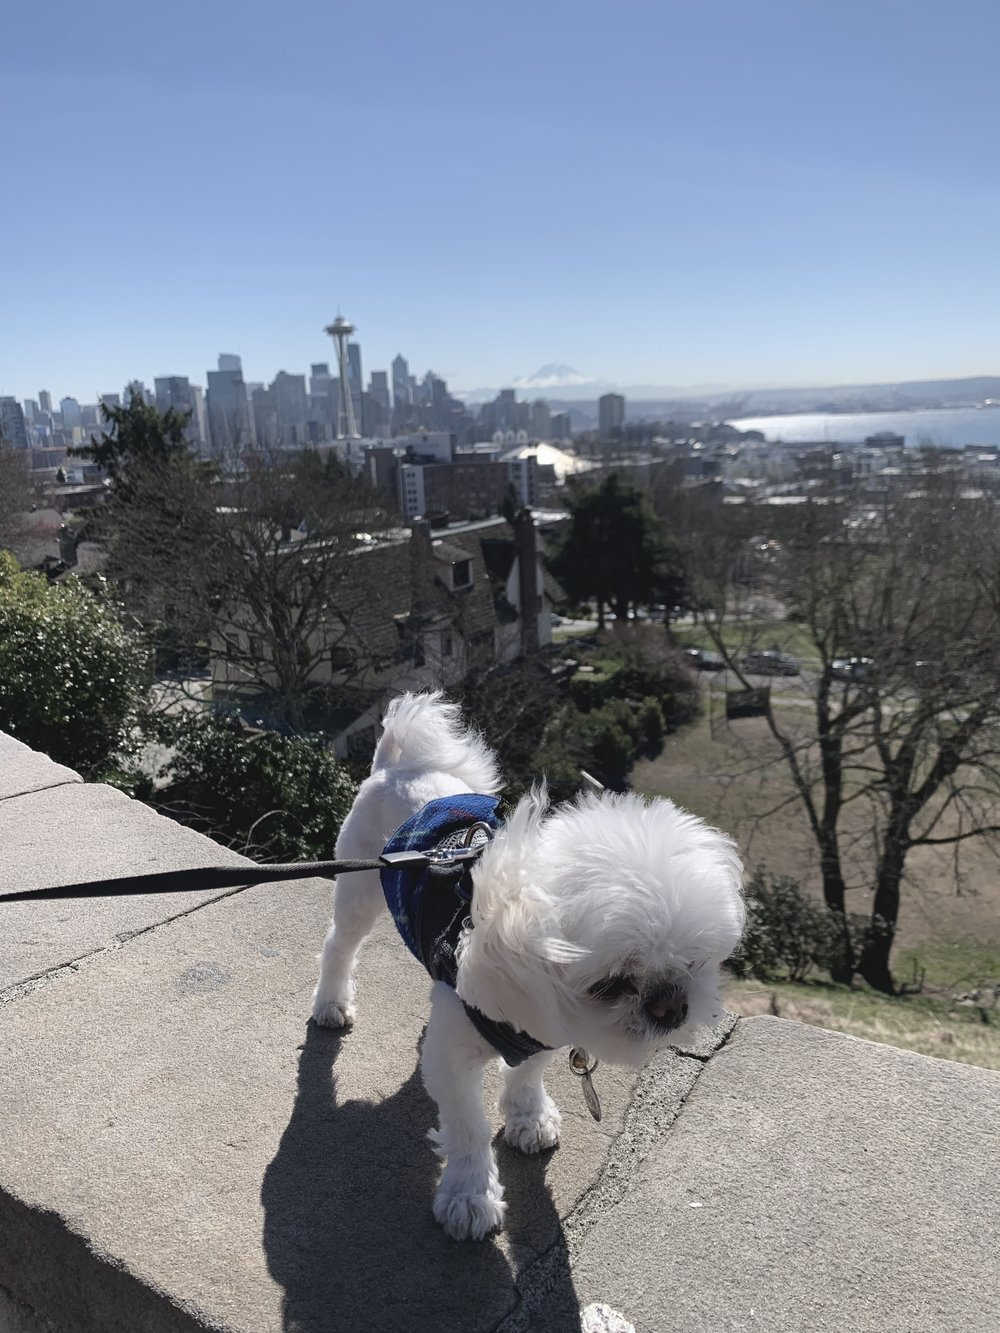 Insiders Guide To Seattle - Kerry Park - letsregale.com.jpg